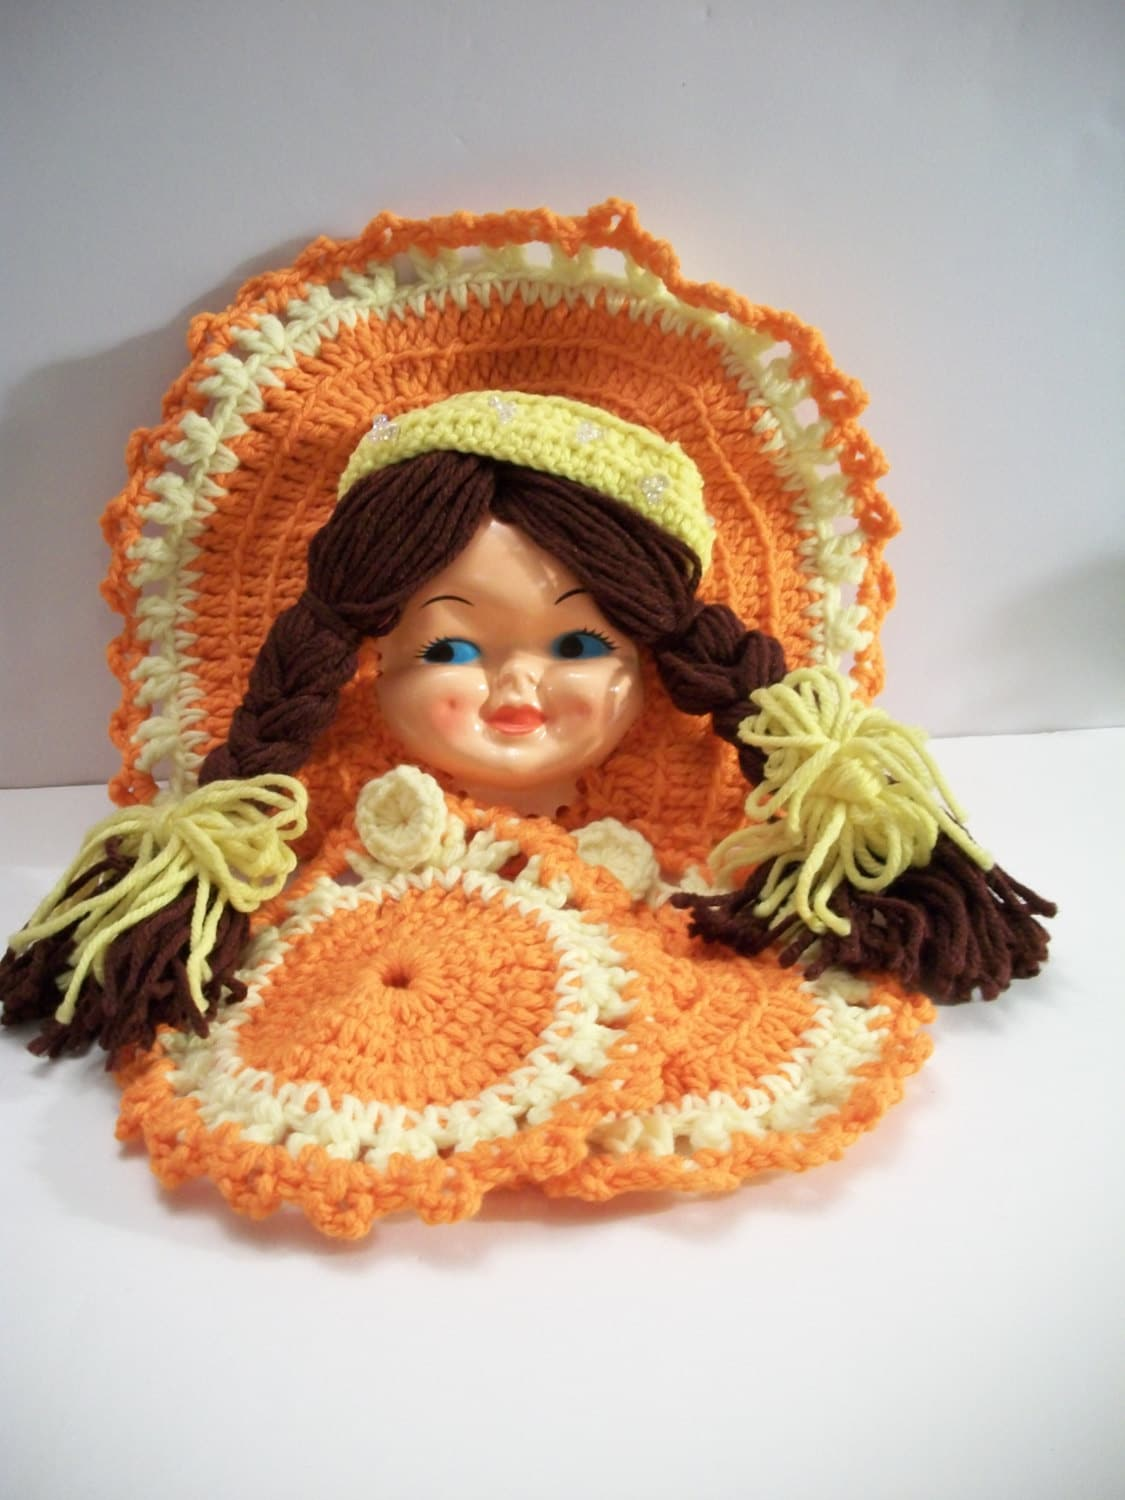 Vintage orange crochet girl with braids pot holder set retro for Vintage sites like etsy